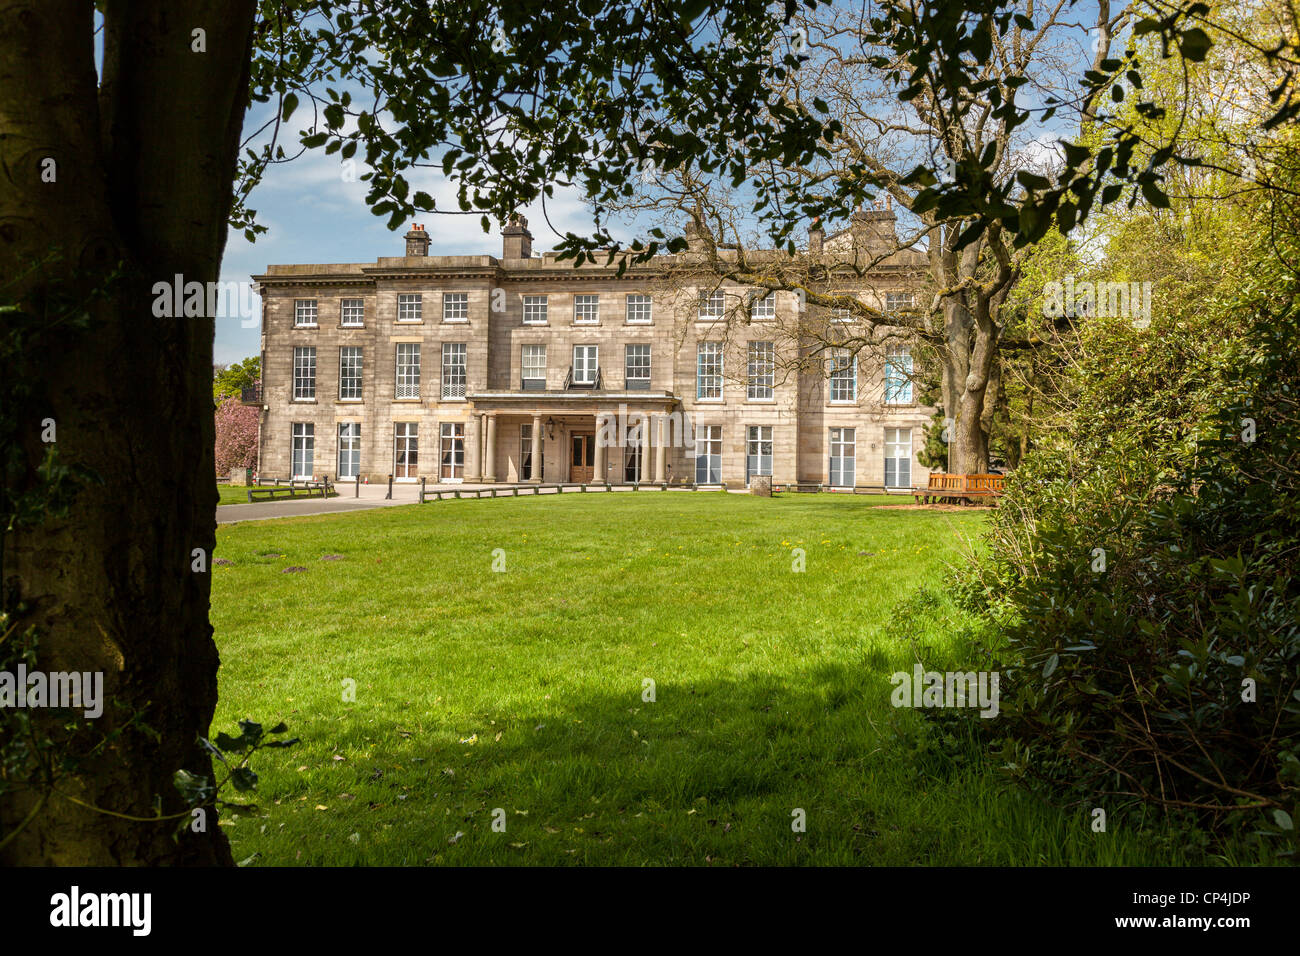 Haigh Hall in Haigh Country Park Wigan. - Stock Image